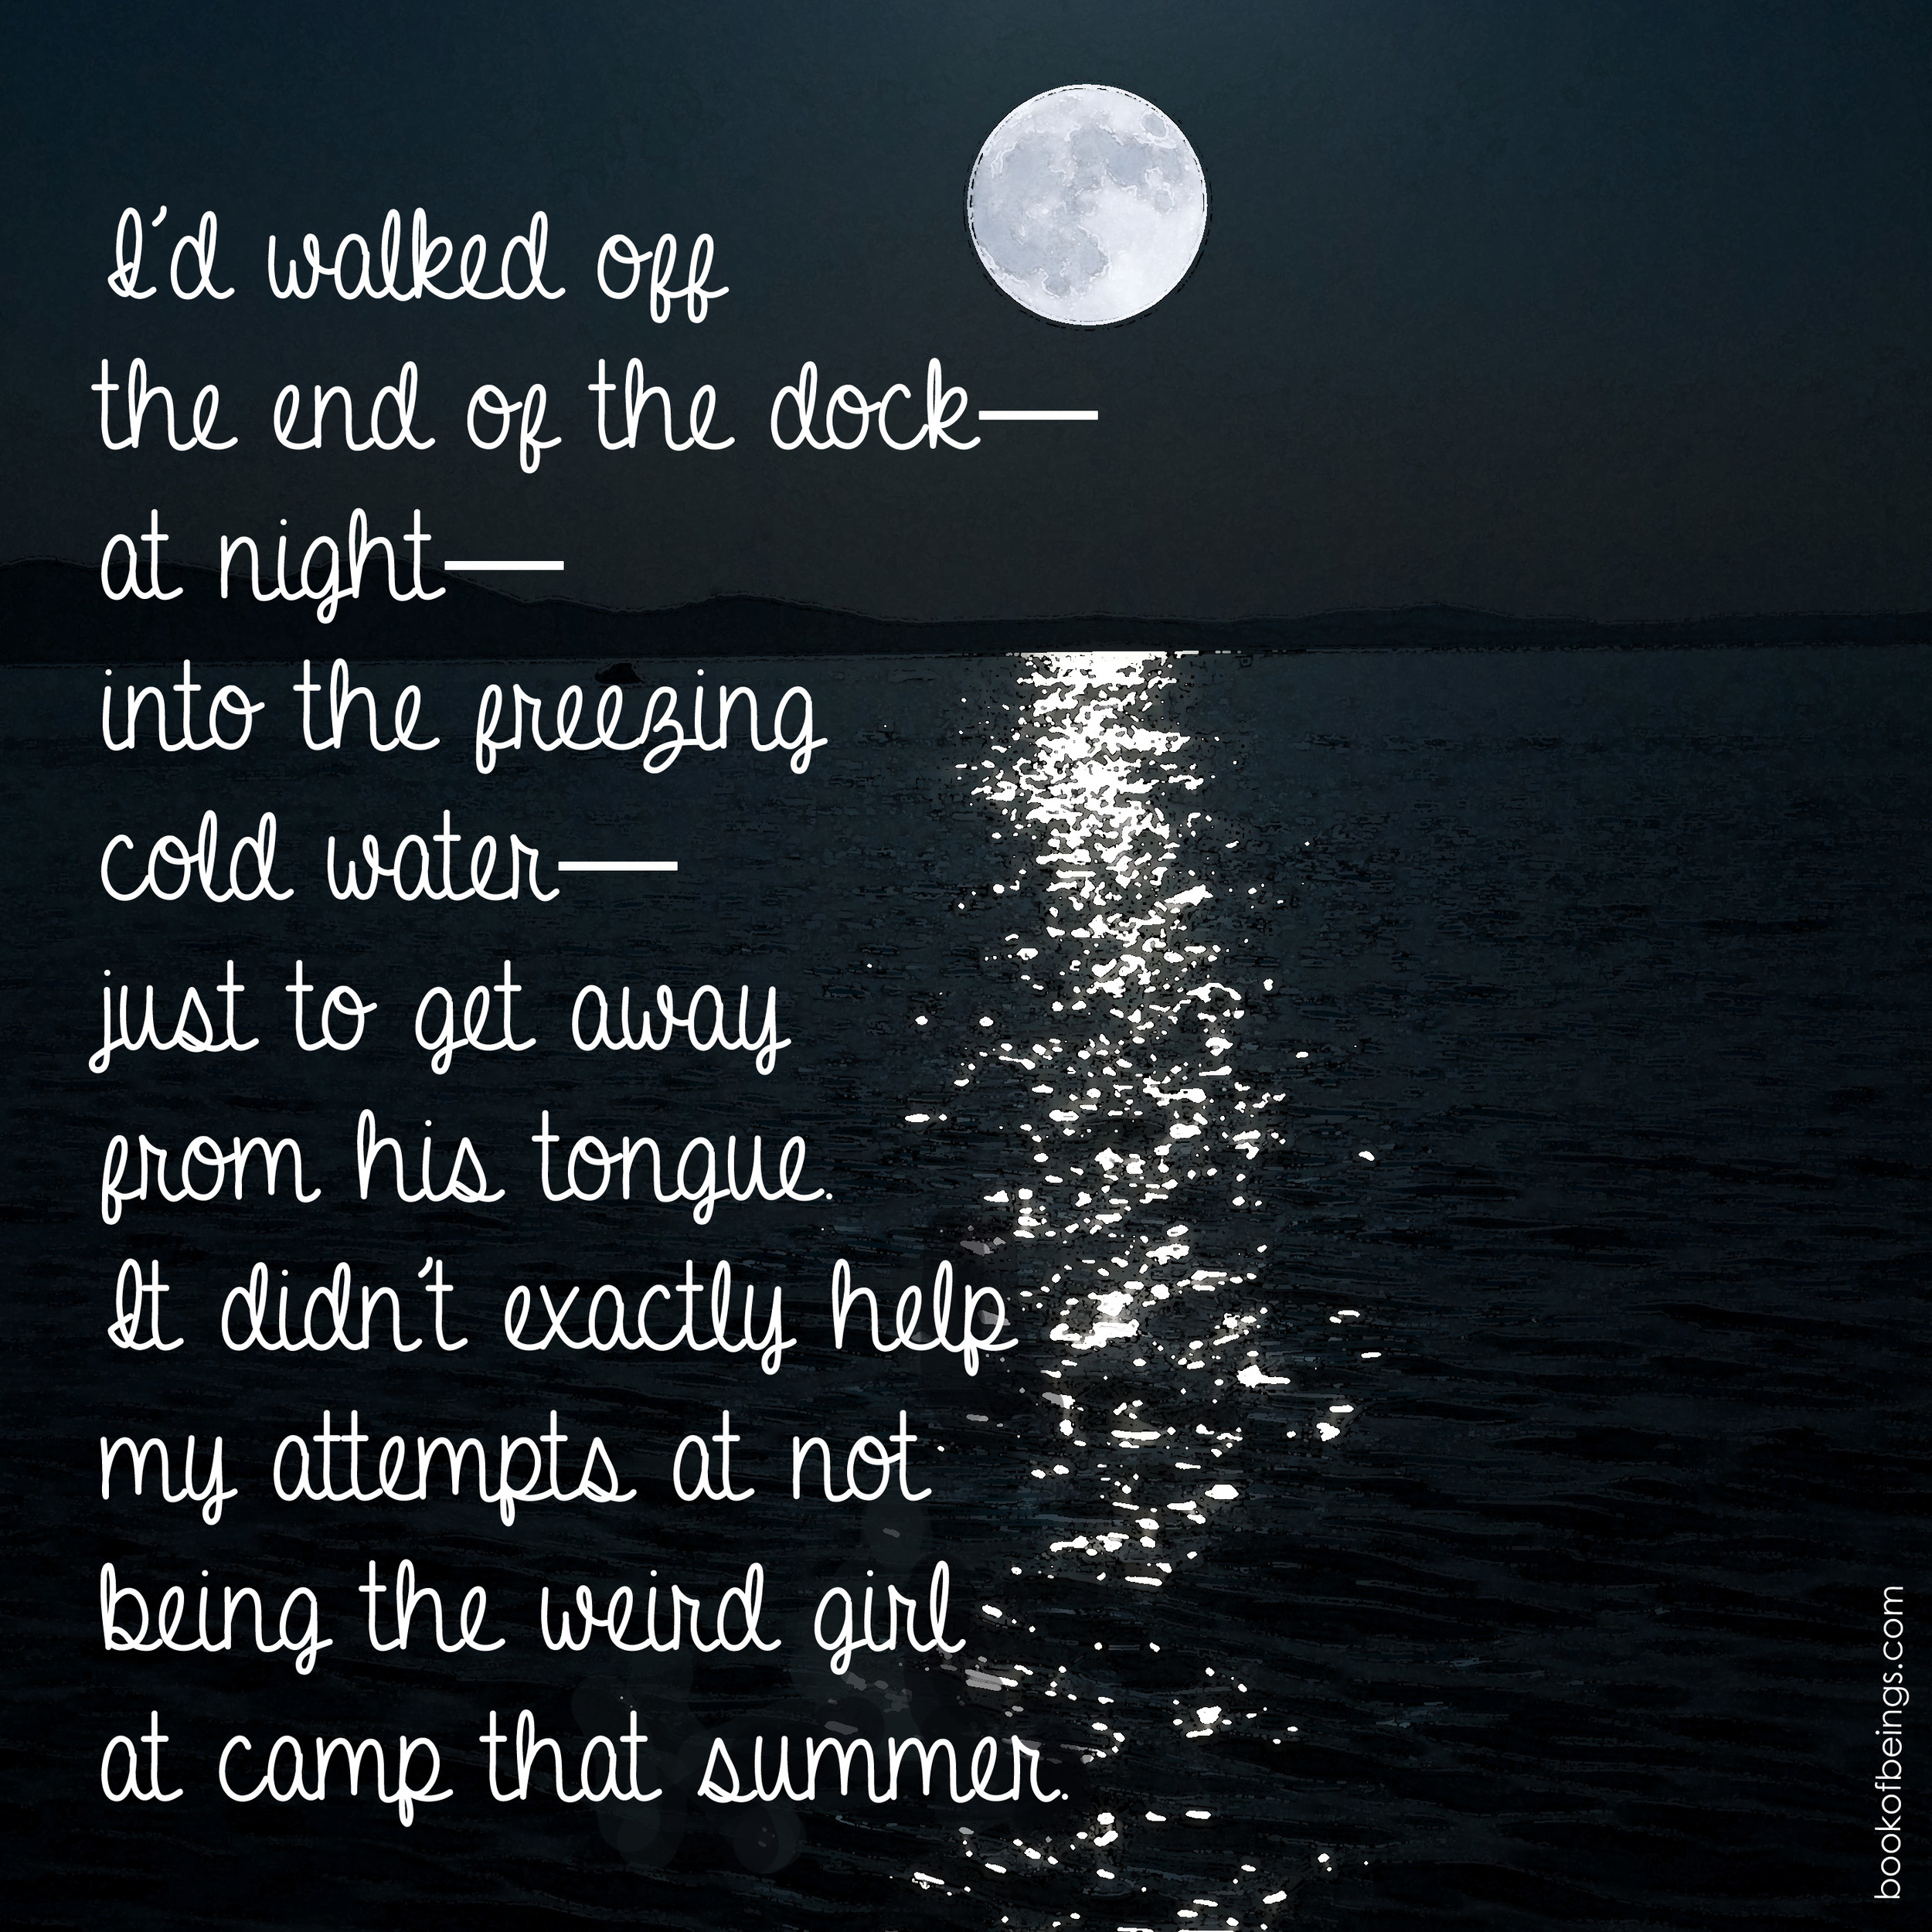 from Chapter 4  I'd walked off the end of the dock--at night--into the freezing cold water--just to get away from his tongue. It didn't exactly help my attempts at not being the weird girl at camp that summer.  The Book of Beings Read-Along at  bookofbeings.com